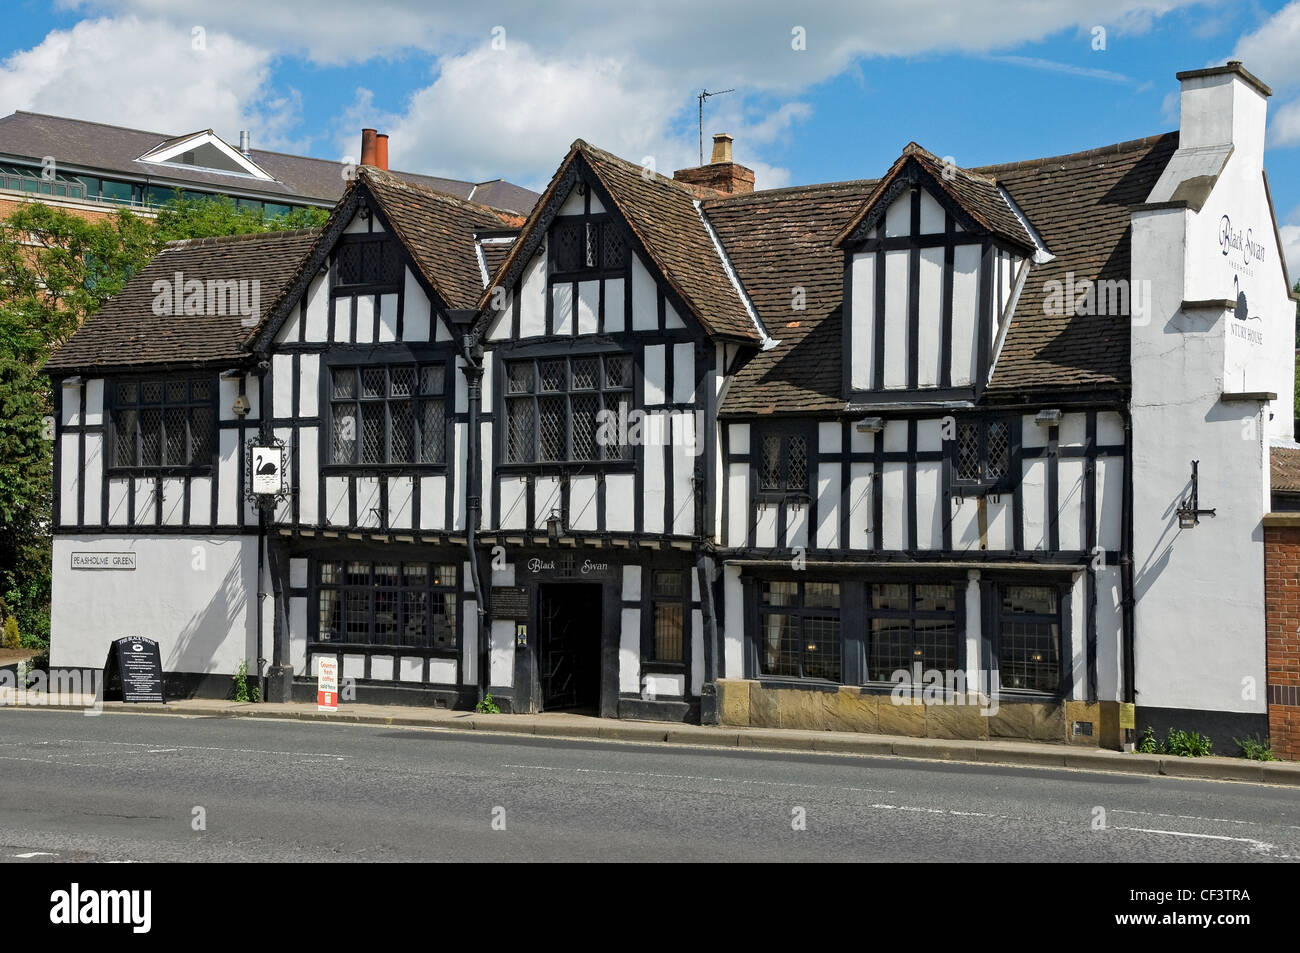 The Black Swan pub in Peasholme Green, originally built in 1417 as a family residence. - Stock Image